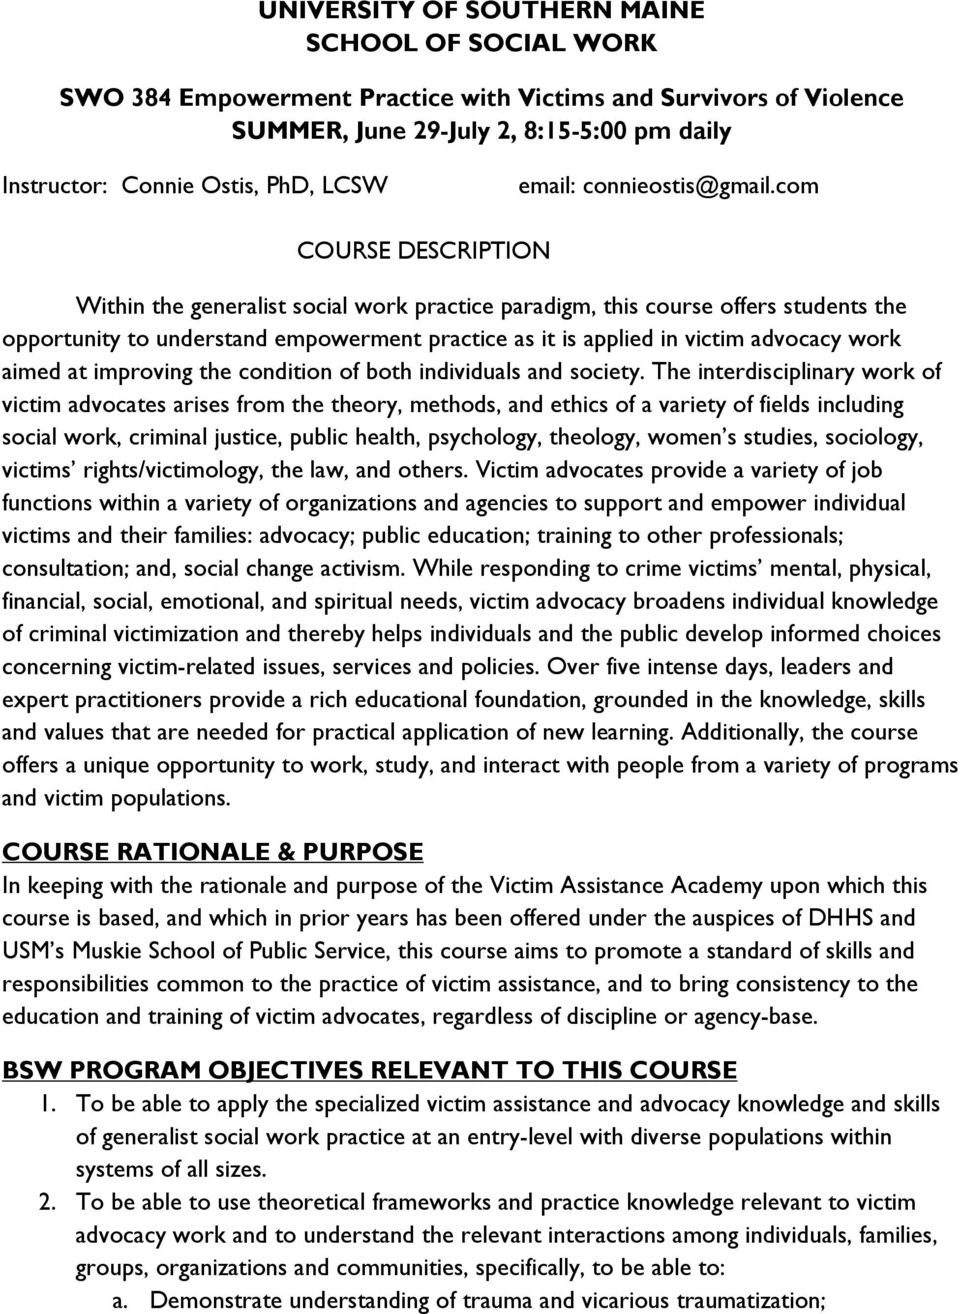 com COURSE DESCRIPTION Within the generalist social work practice paradigm, this course offers students the opportunity to understand empowerment practice as it is applied in victim advocacy work